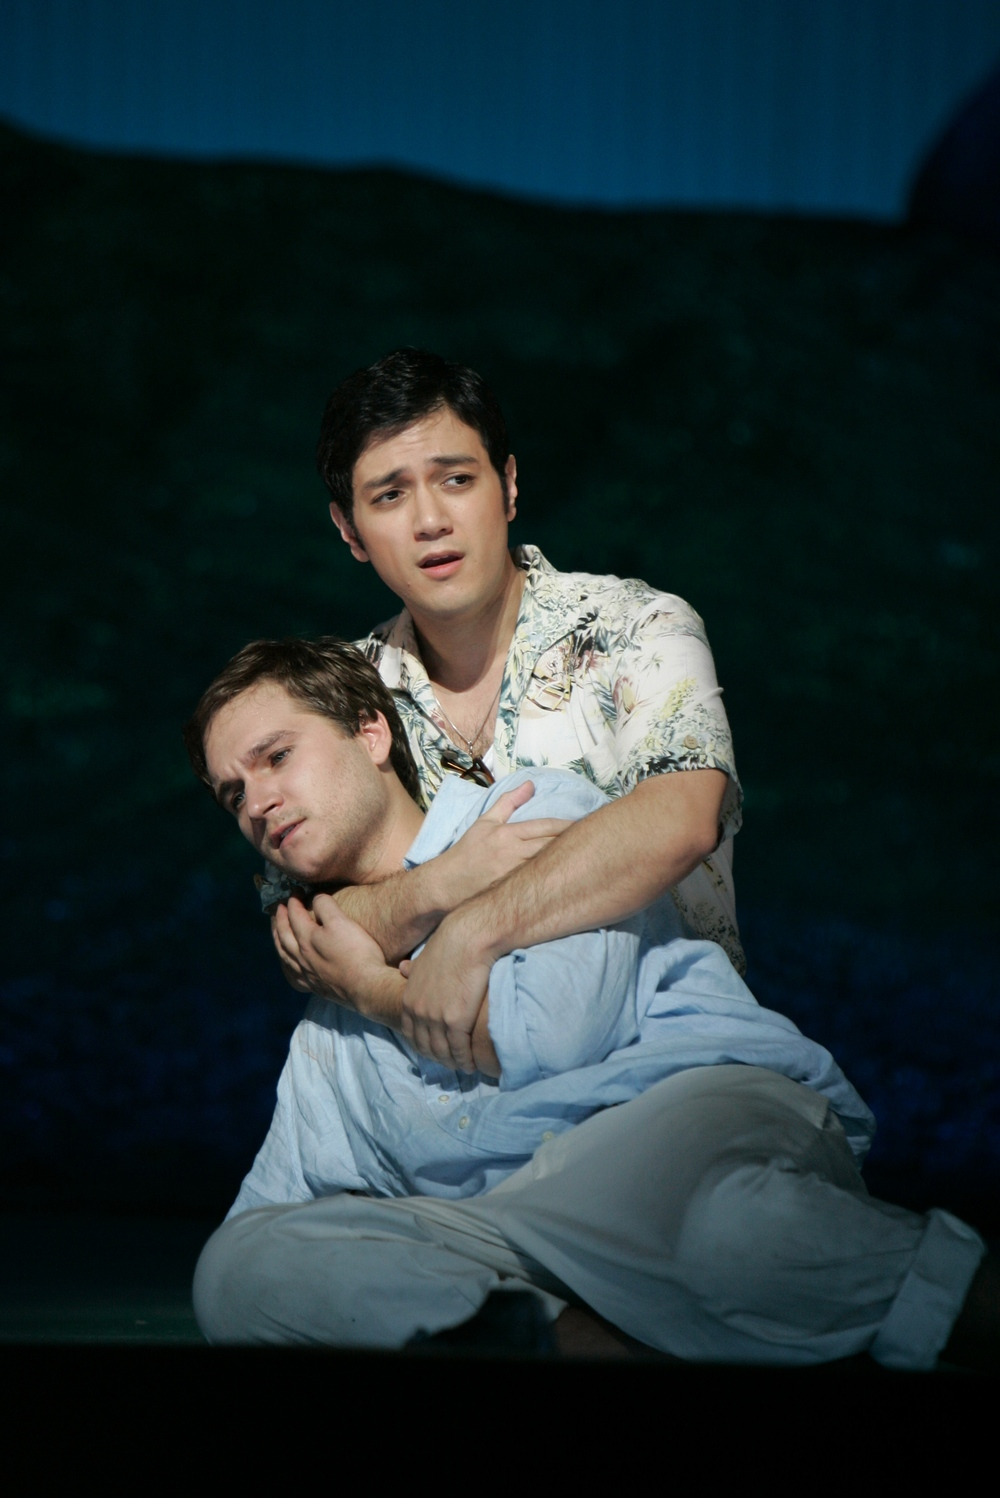 Damon in Acis and Galatea (Handel) at New York City Opera with Philippe Castagner, tenor (Photo credit: Carol Rosegg)